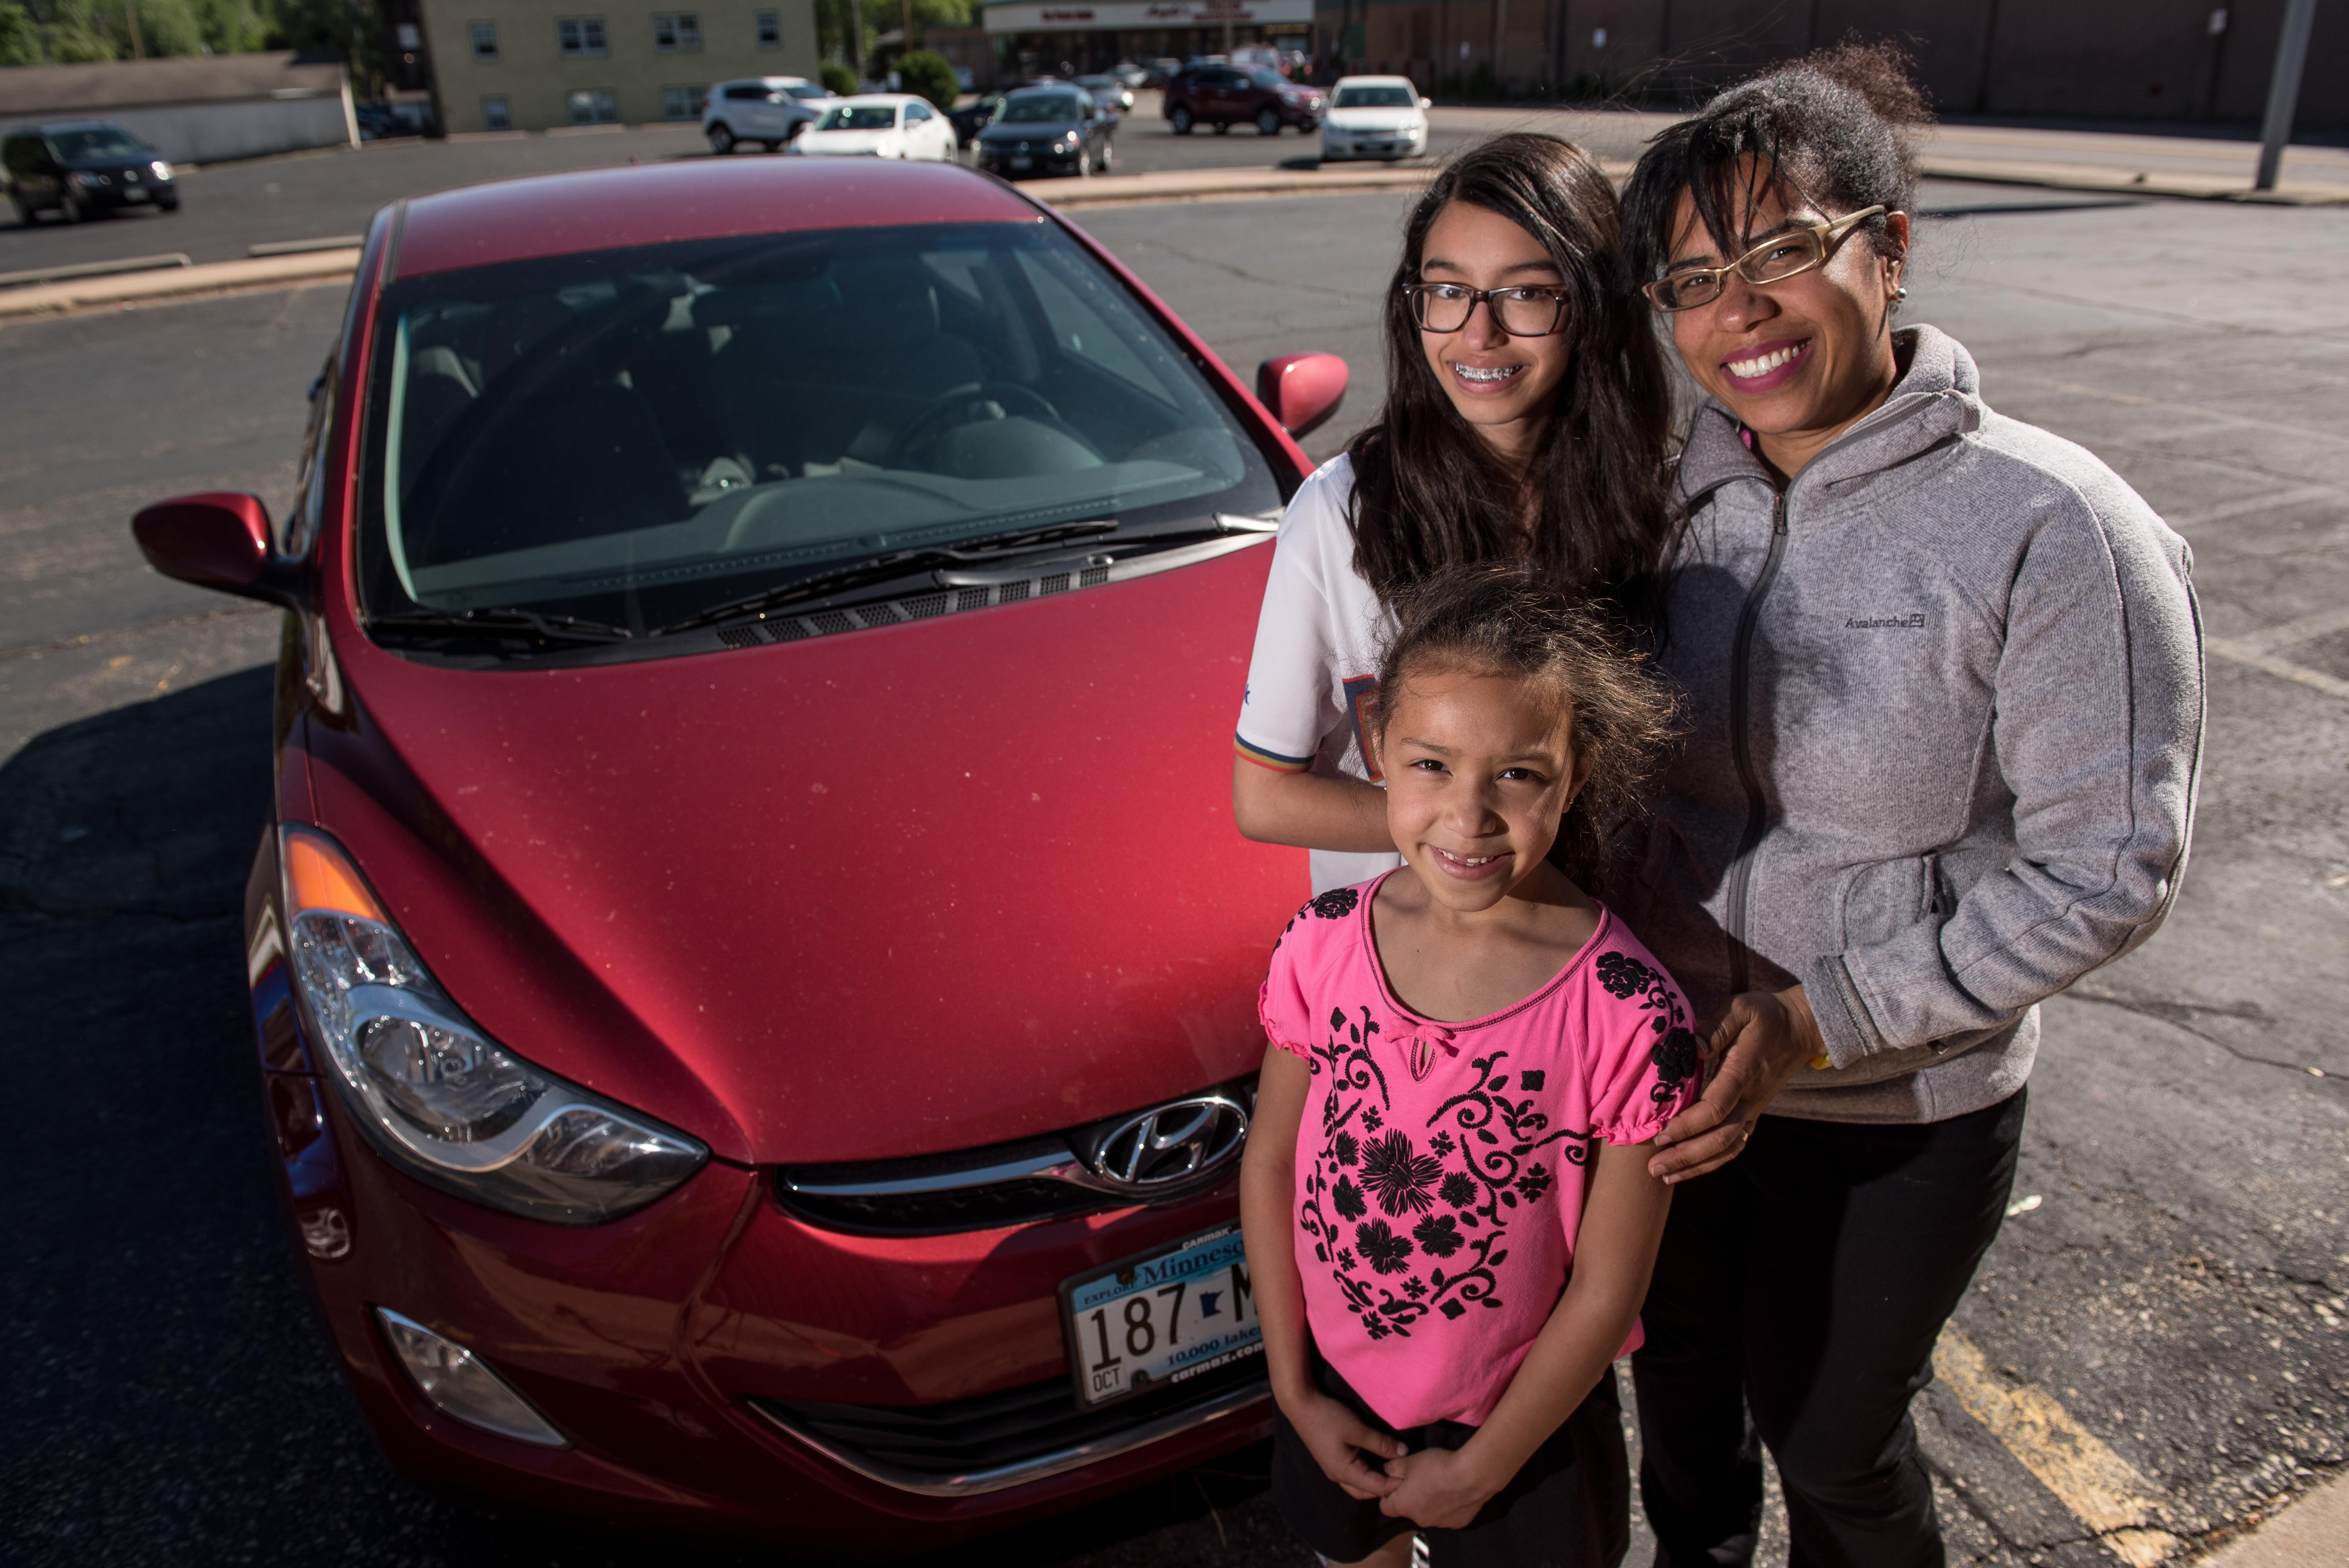 Wakota Federal Credit Union found a way to offer Mariana and her  family a lower rate on her car loan through a slightly different and innovative approach.